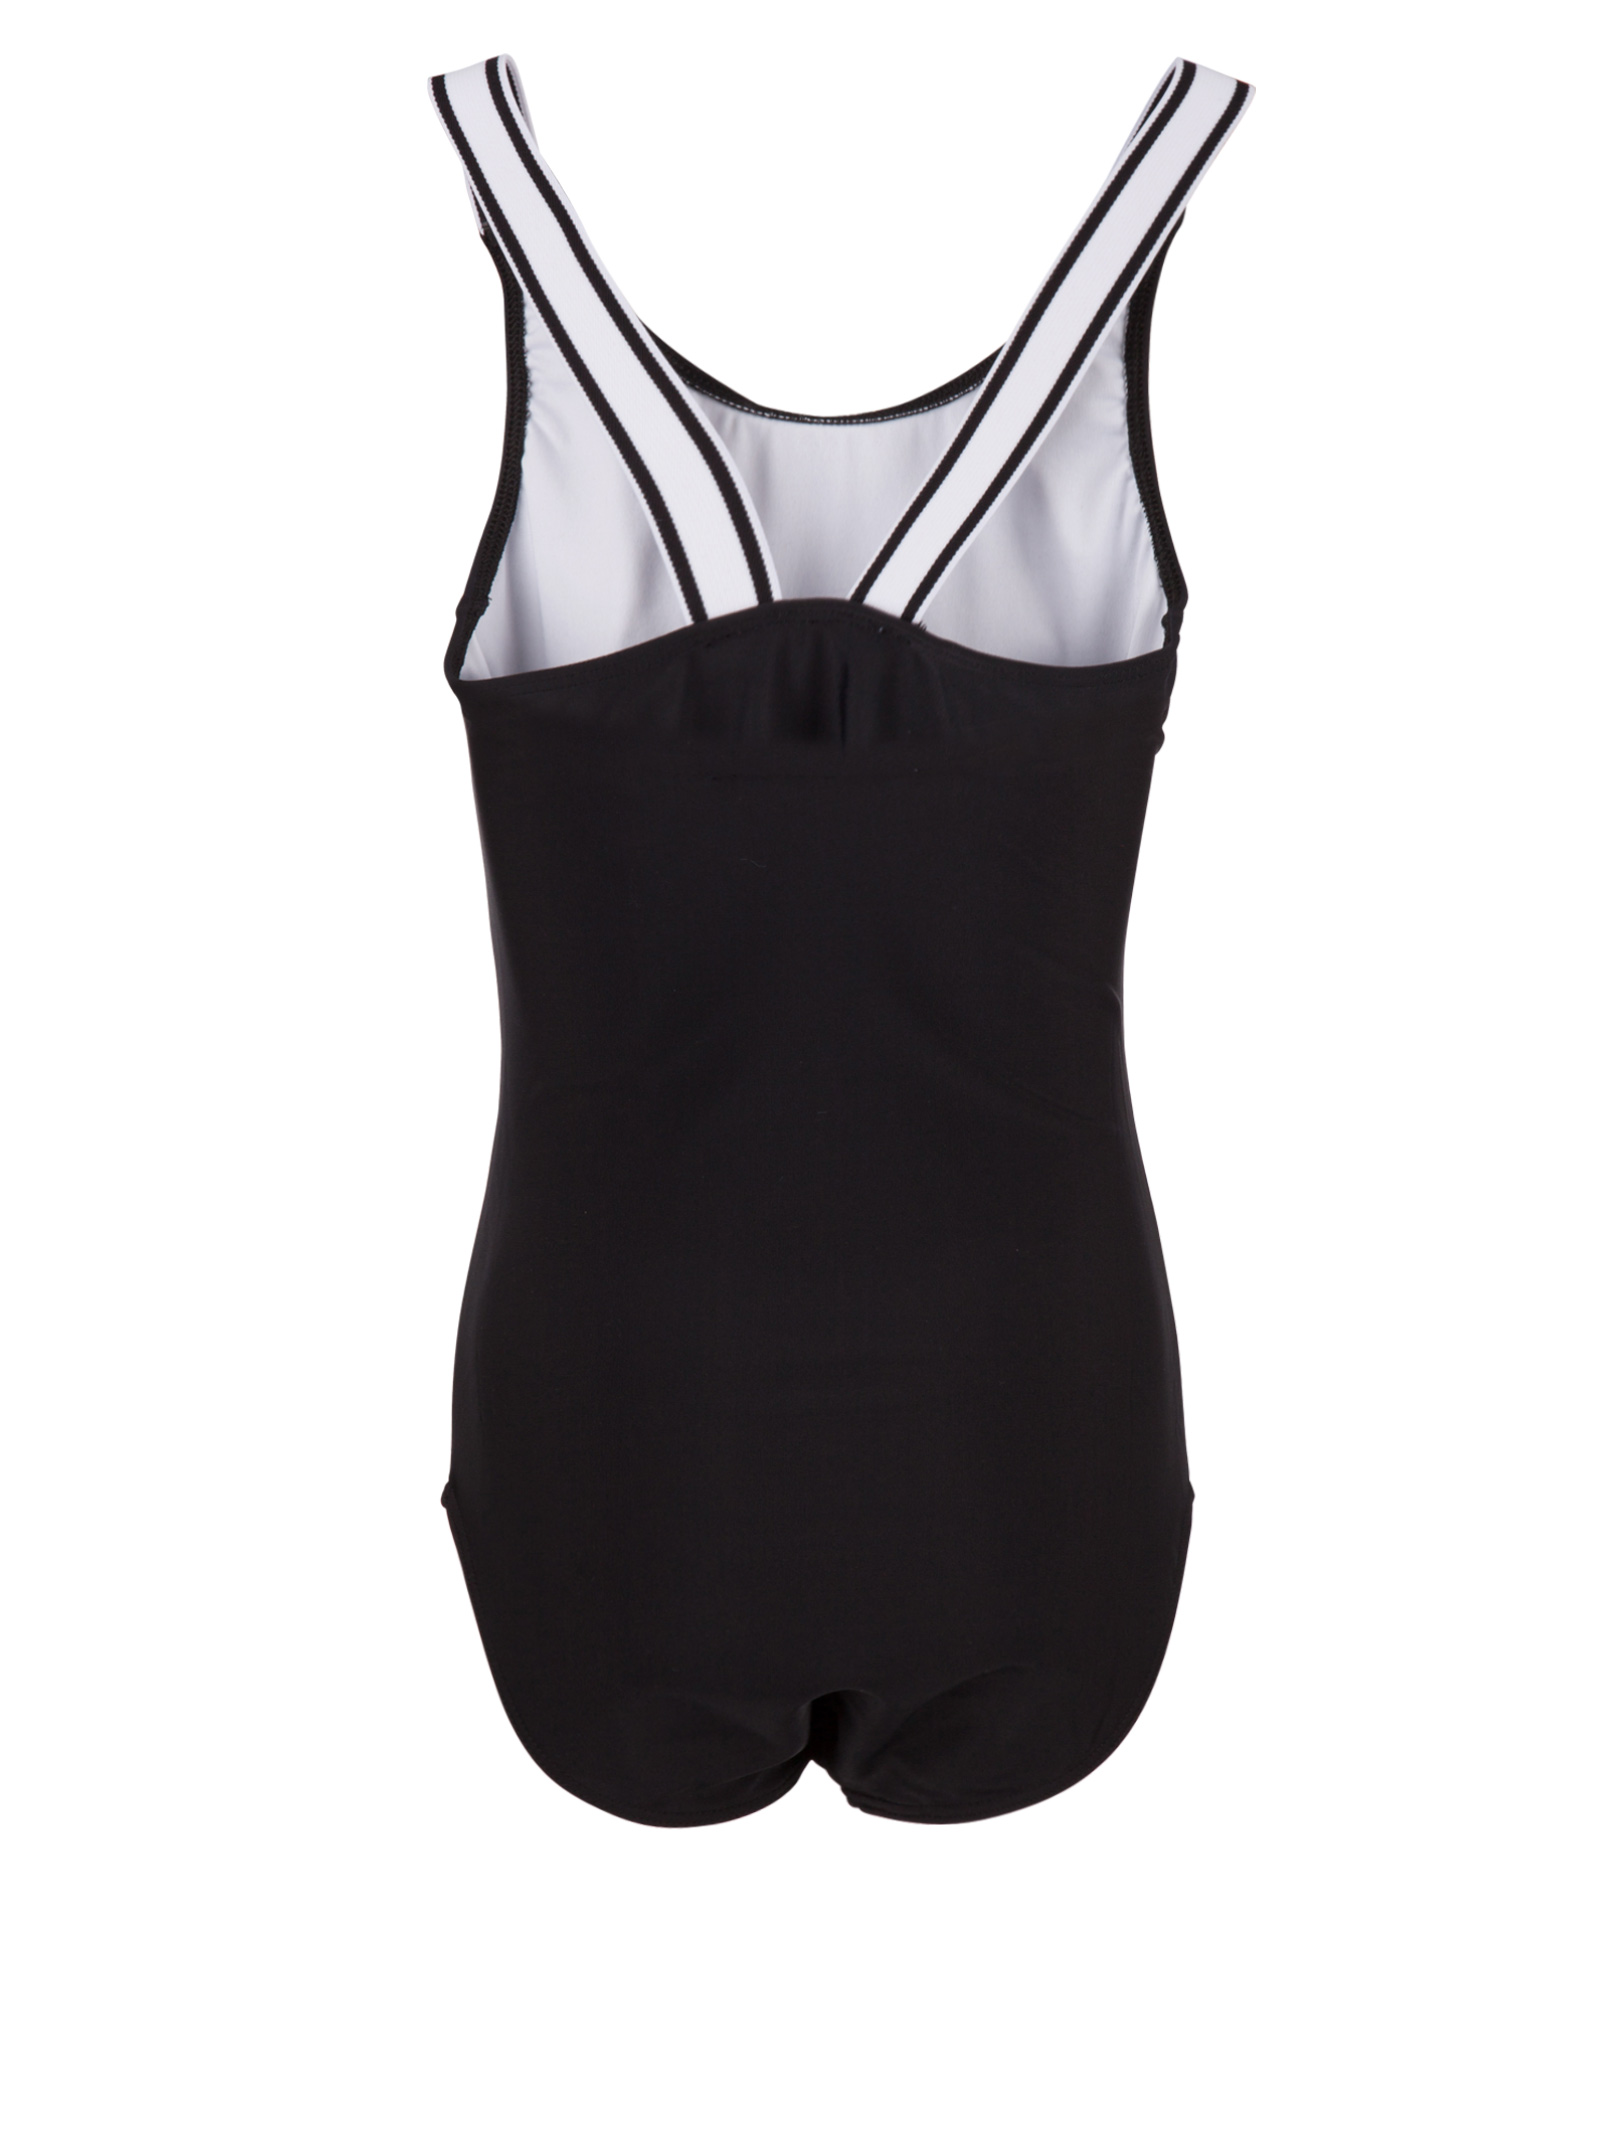 eb62158ed360a Givenchy Kids swimsuit - GIVENCHY kids - Michele Franzese Moda